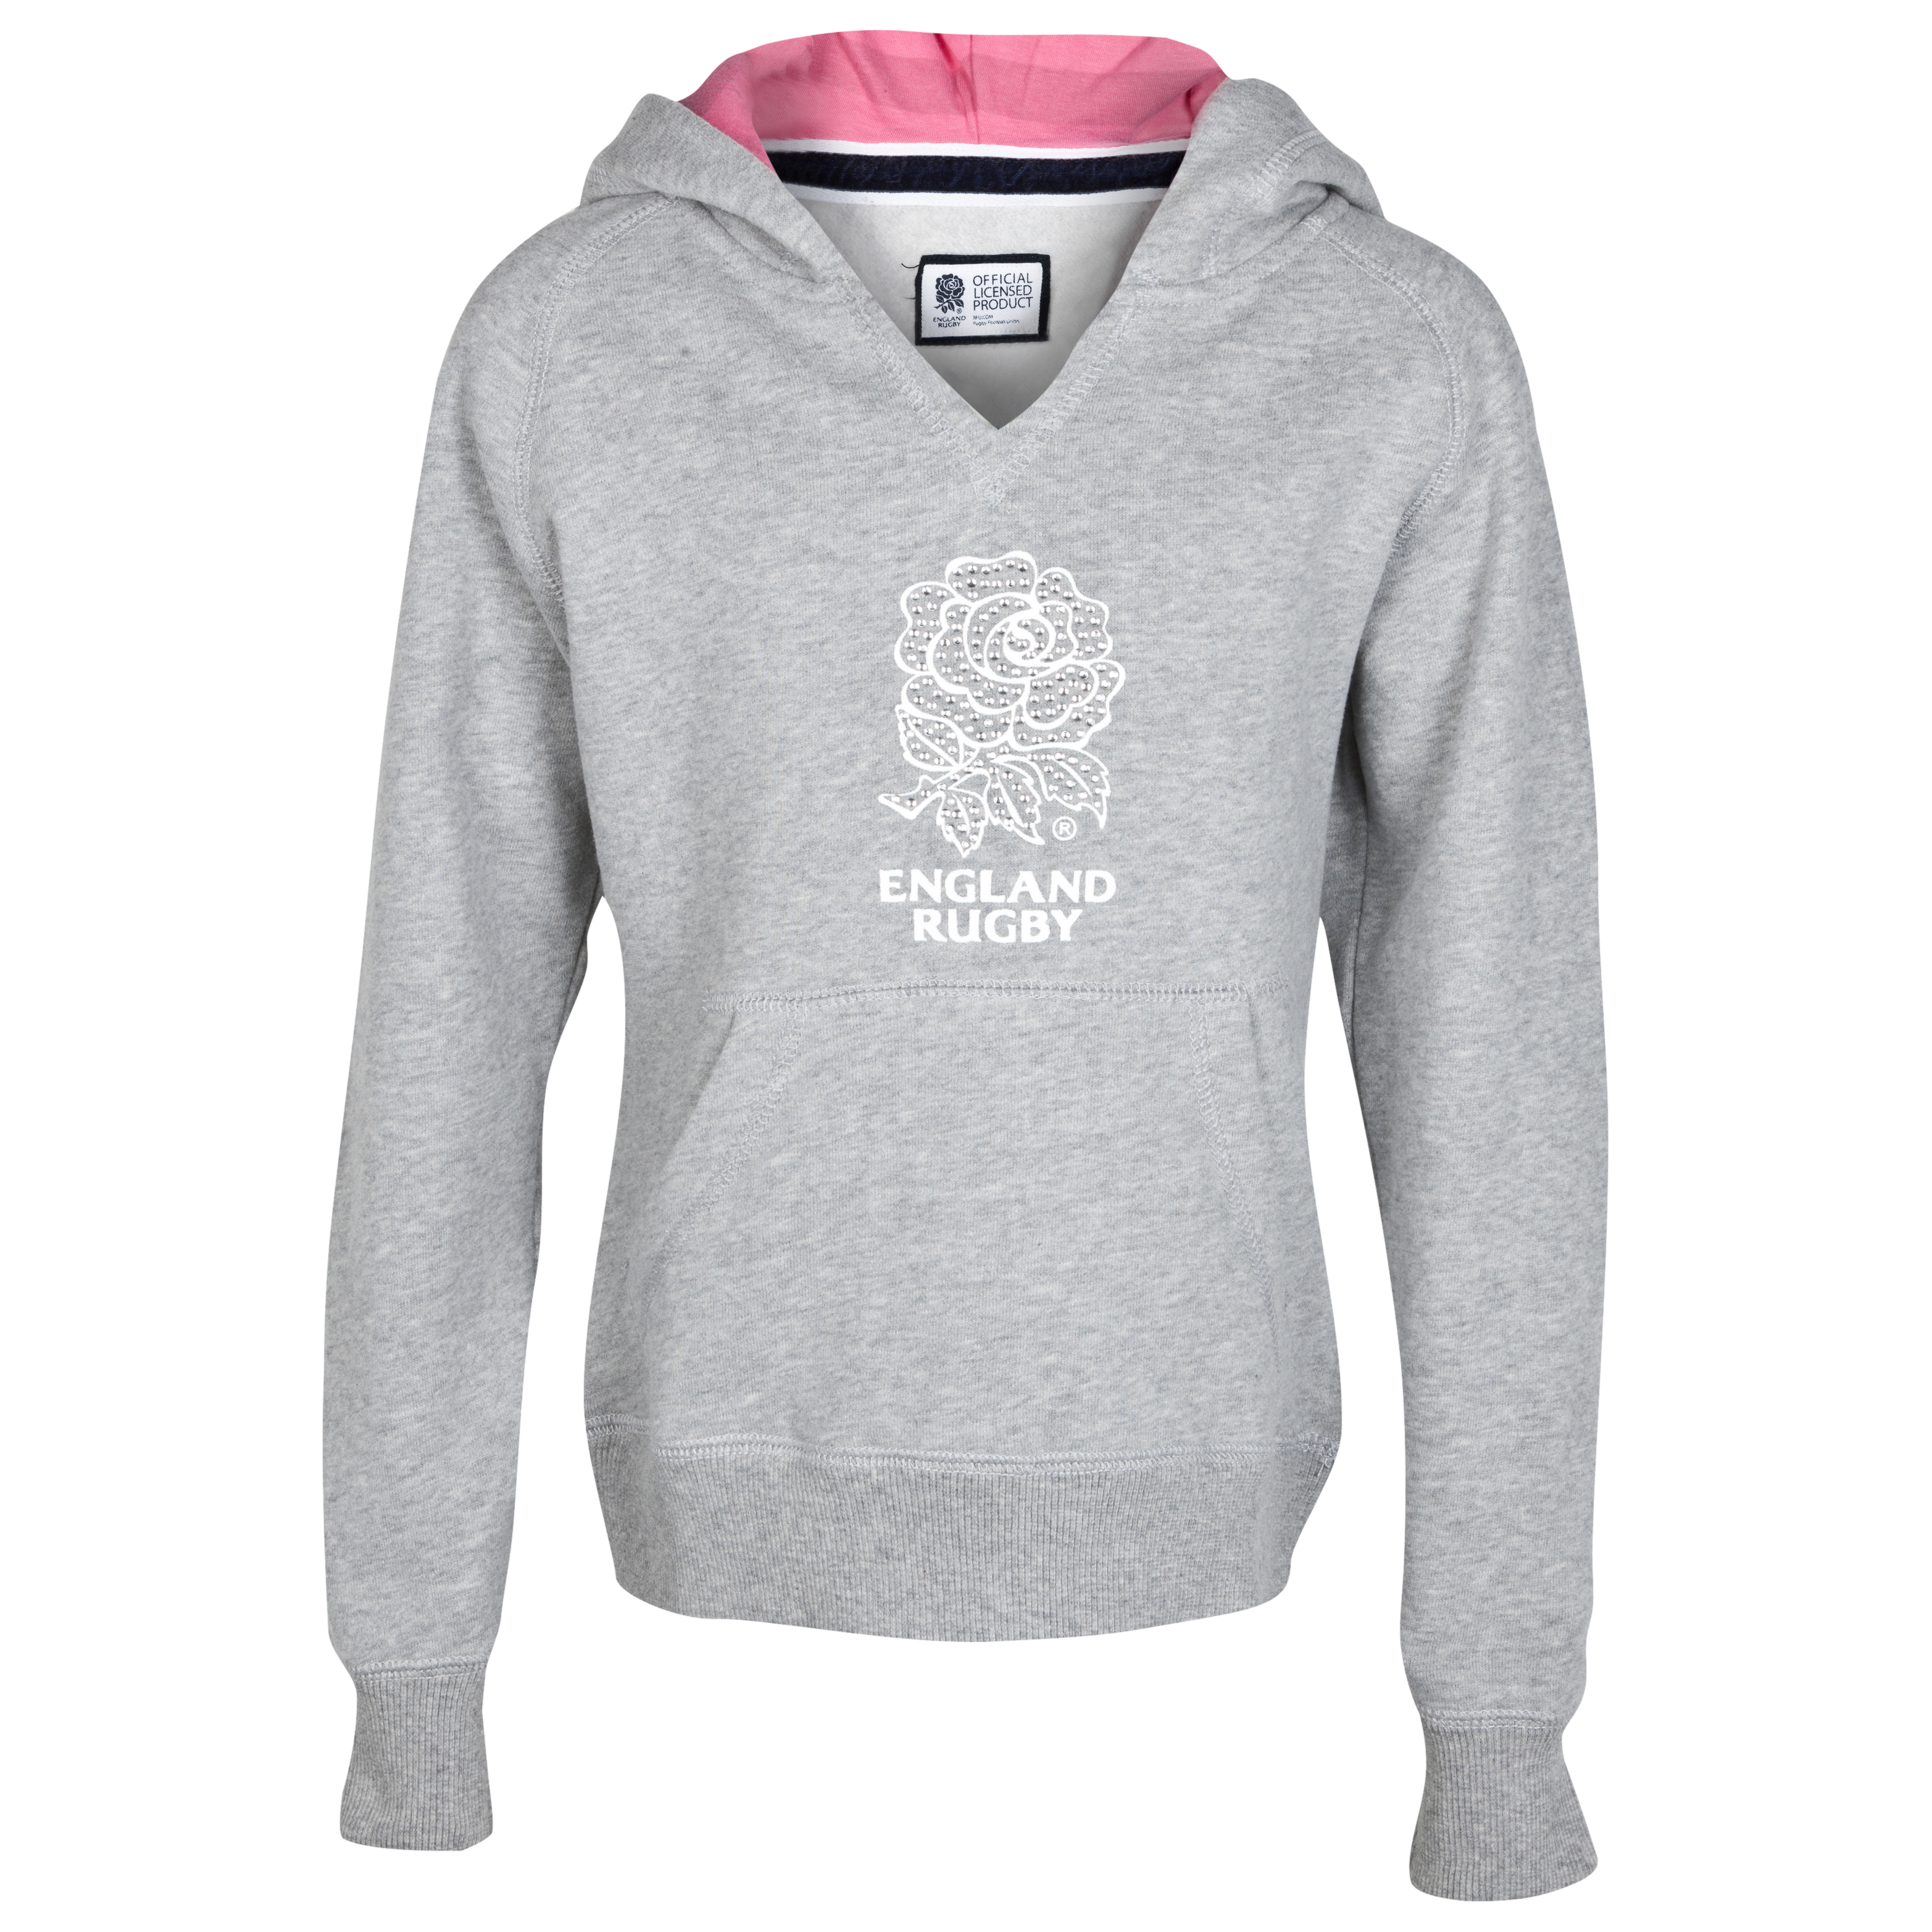 England Rugby Classic Collection Hoody - Grey/Pink - Infant Girls